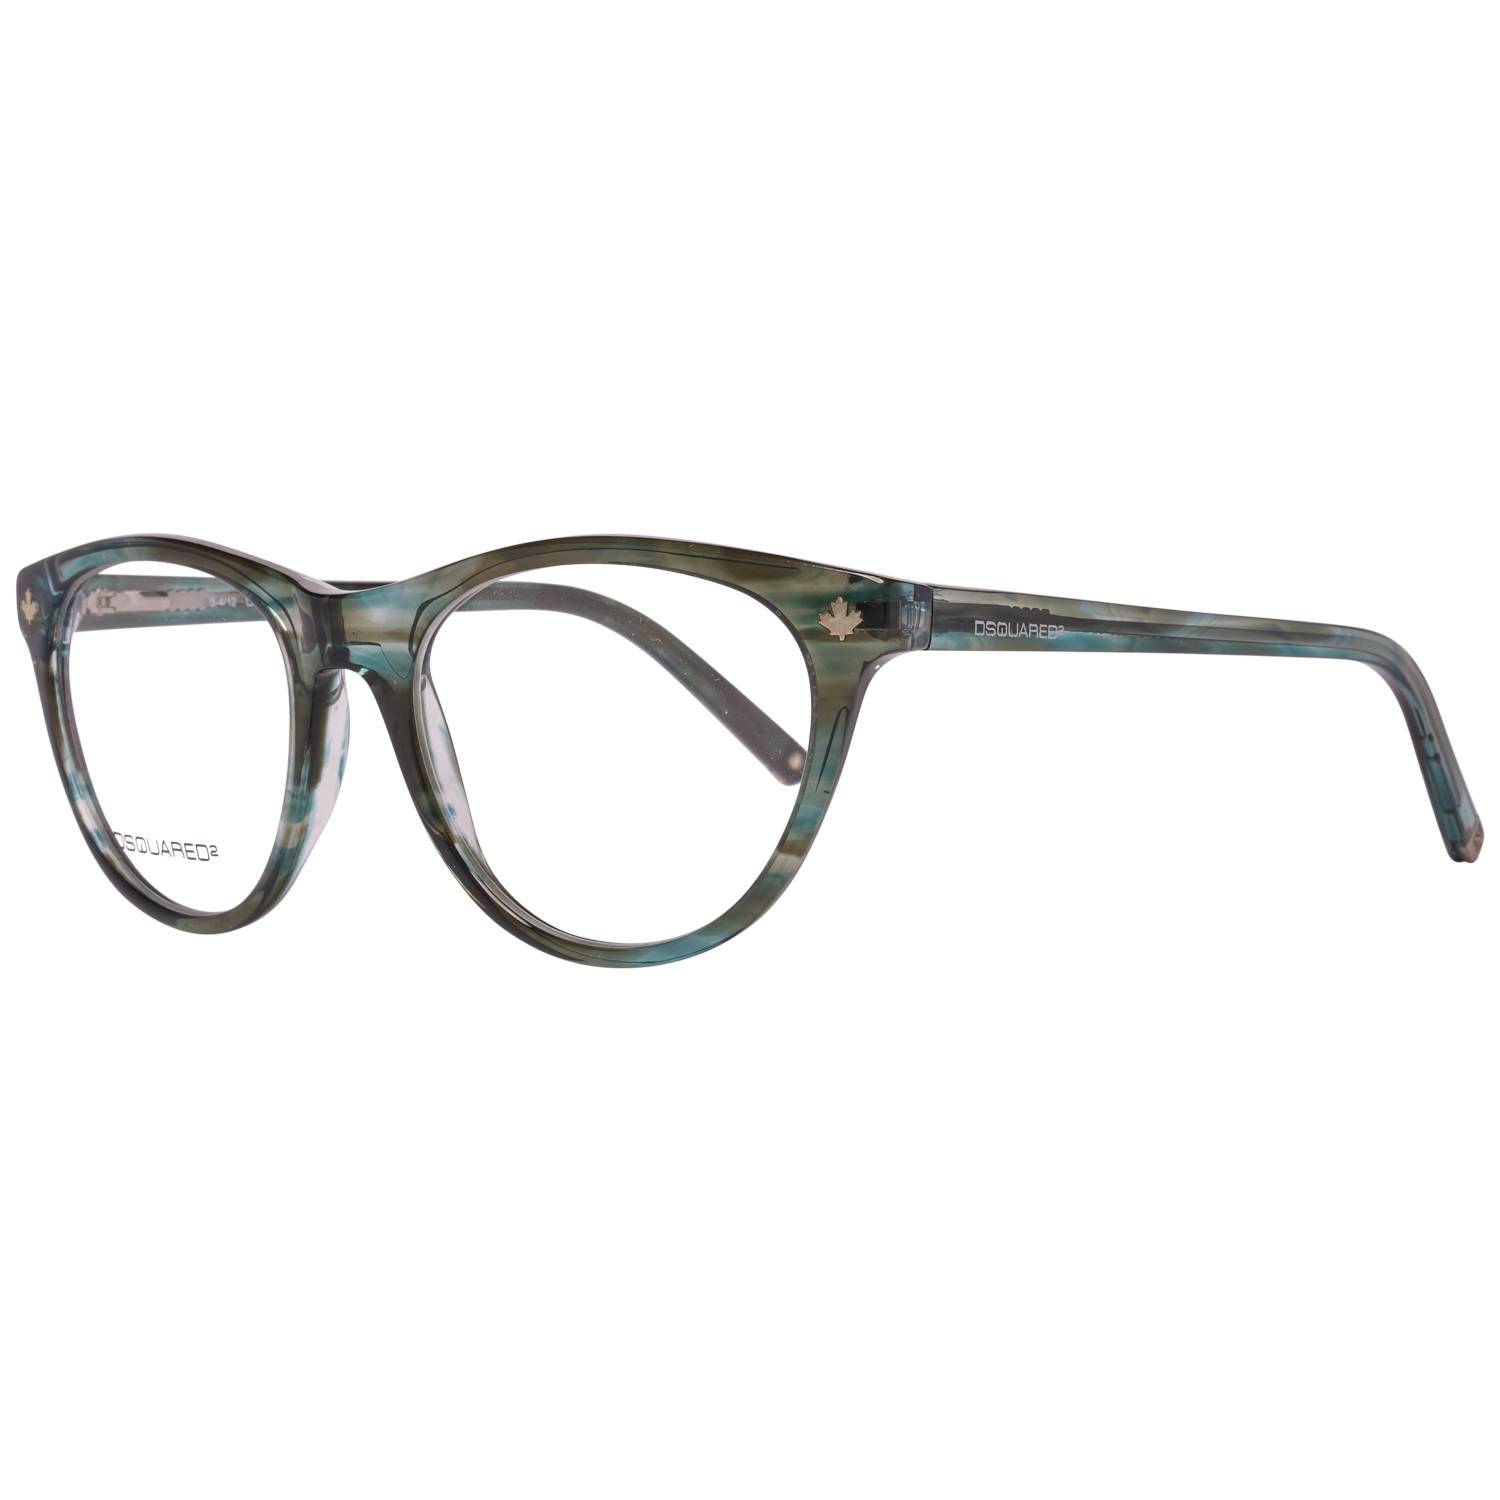 Dsquared2 Optical Frame DQ5107 089 52 Multicolor